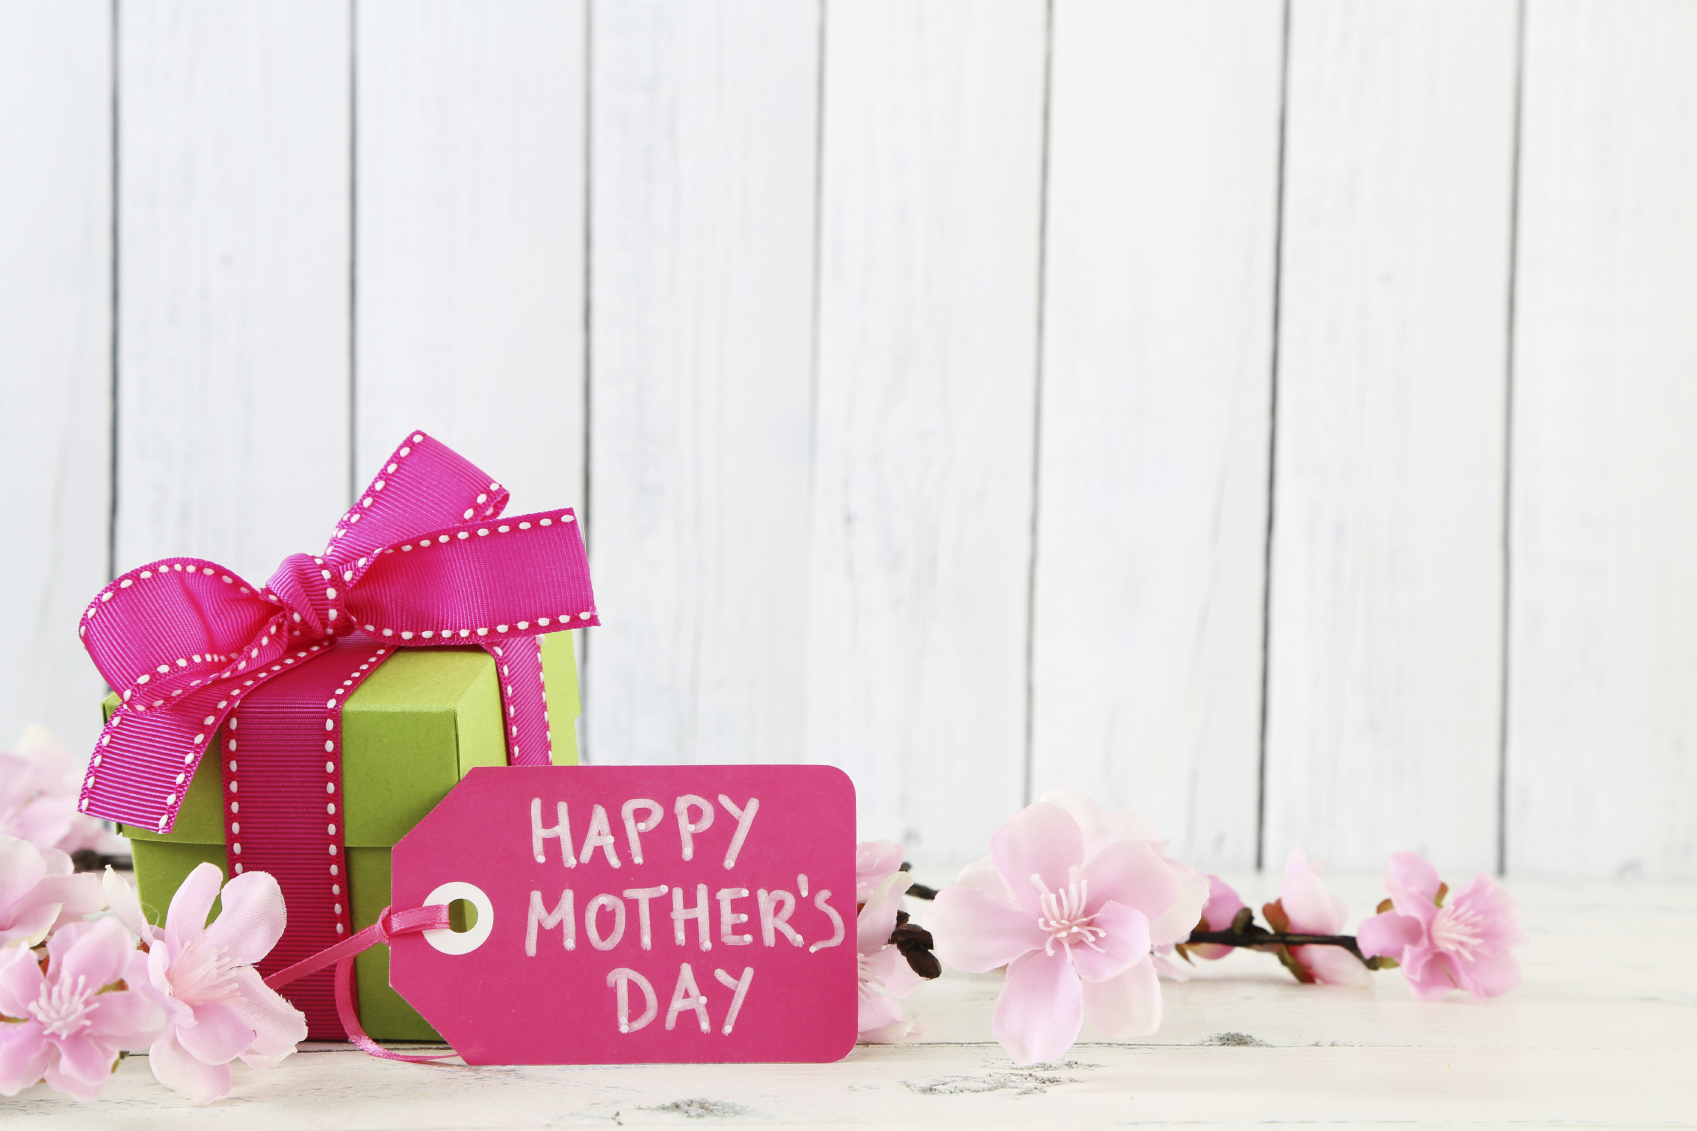 4 Ways That Your Beauty Business Can Profit from Mother's Day